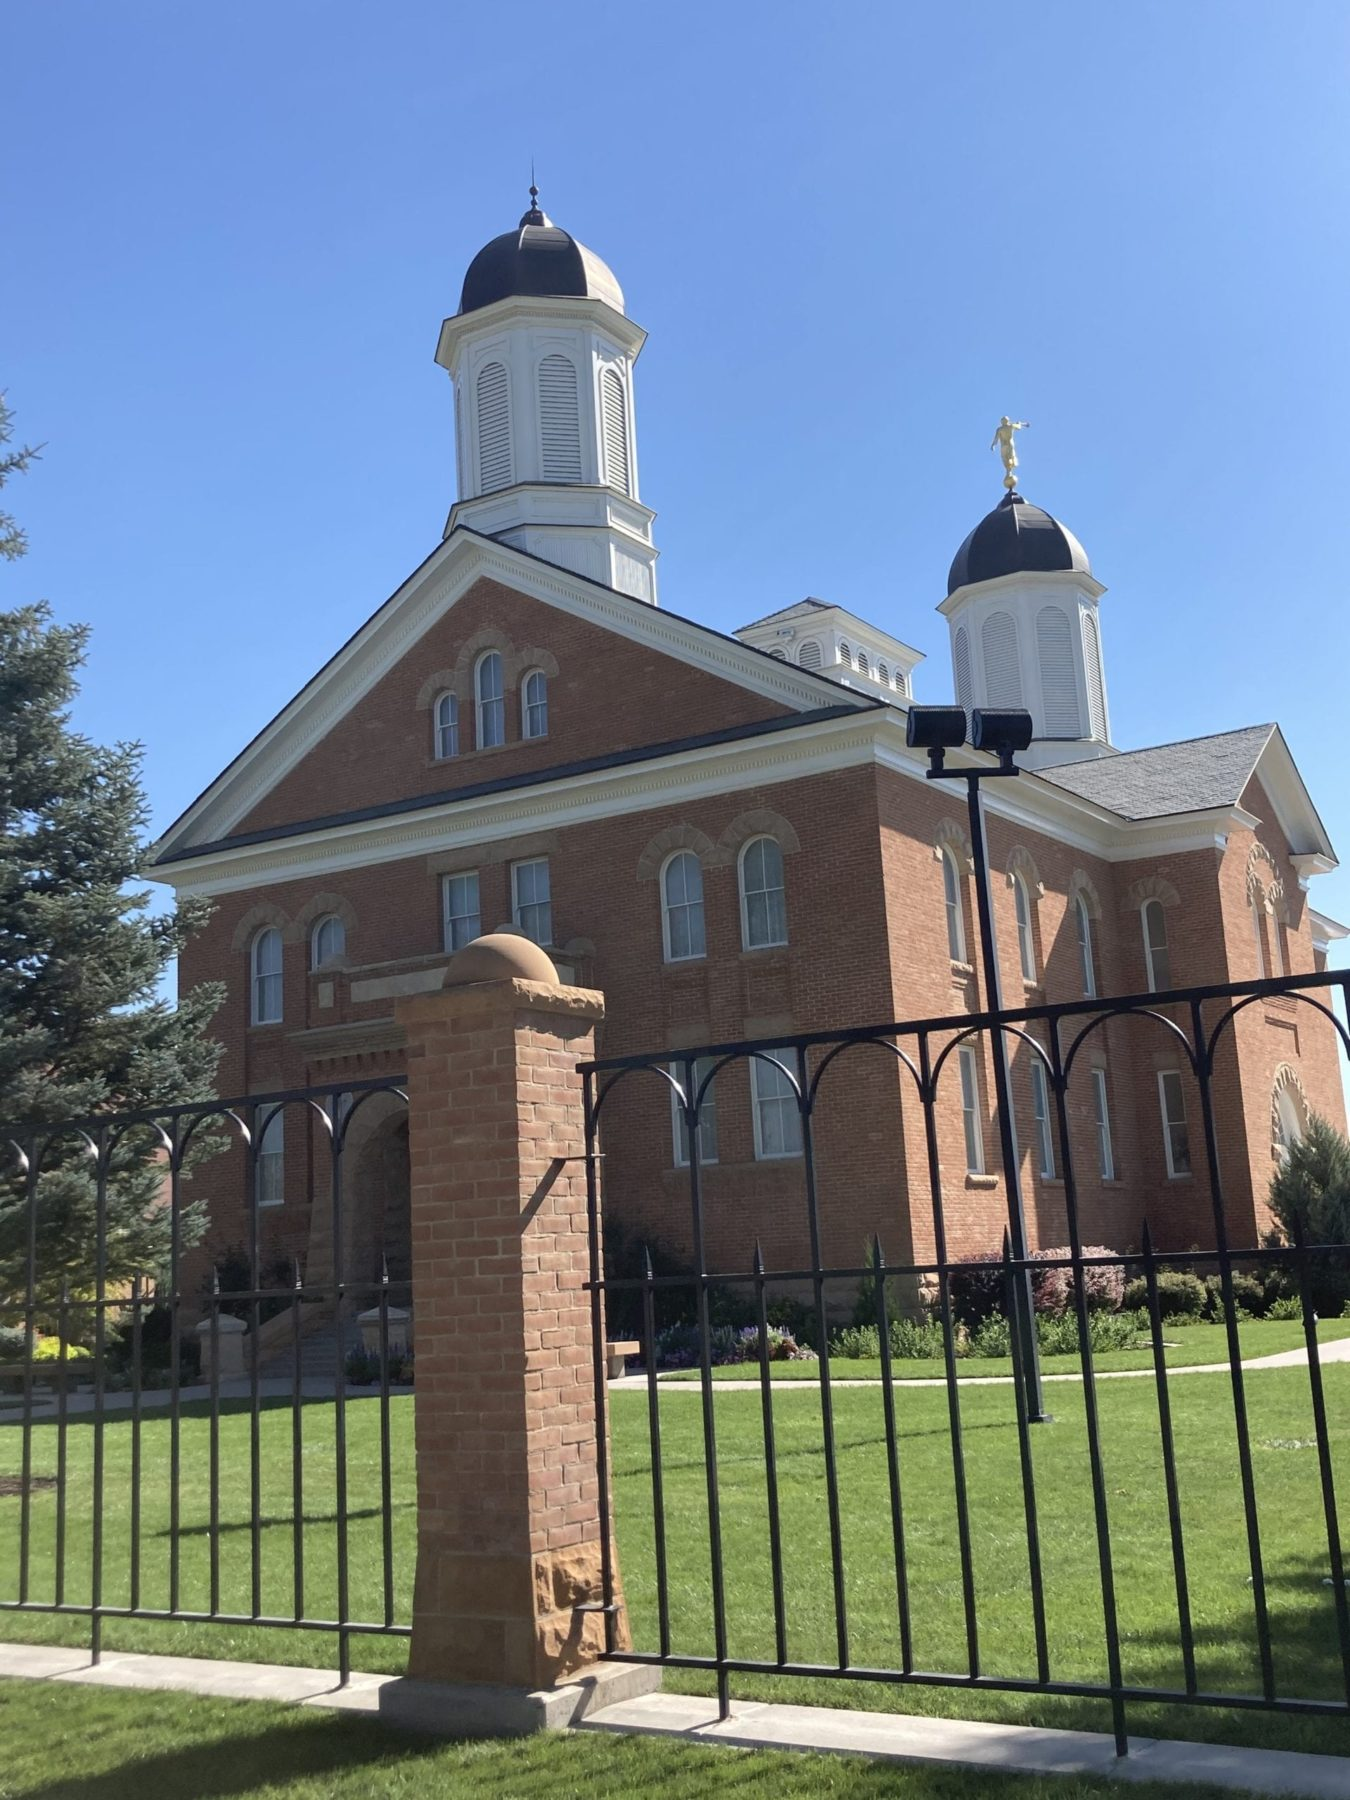 The Church of Jesus Christ of Latter Day Saints Temple Vernal